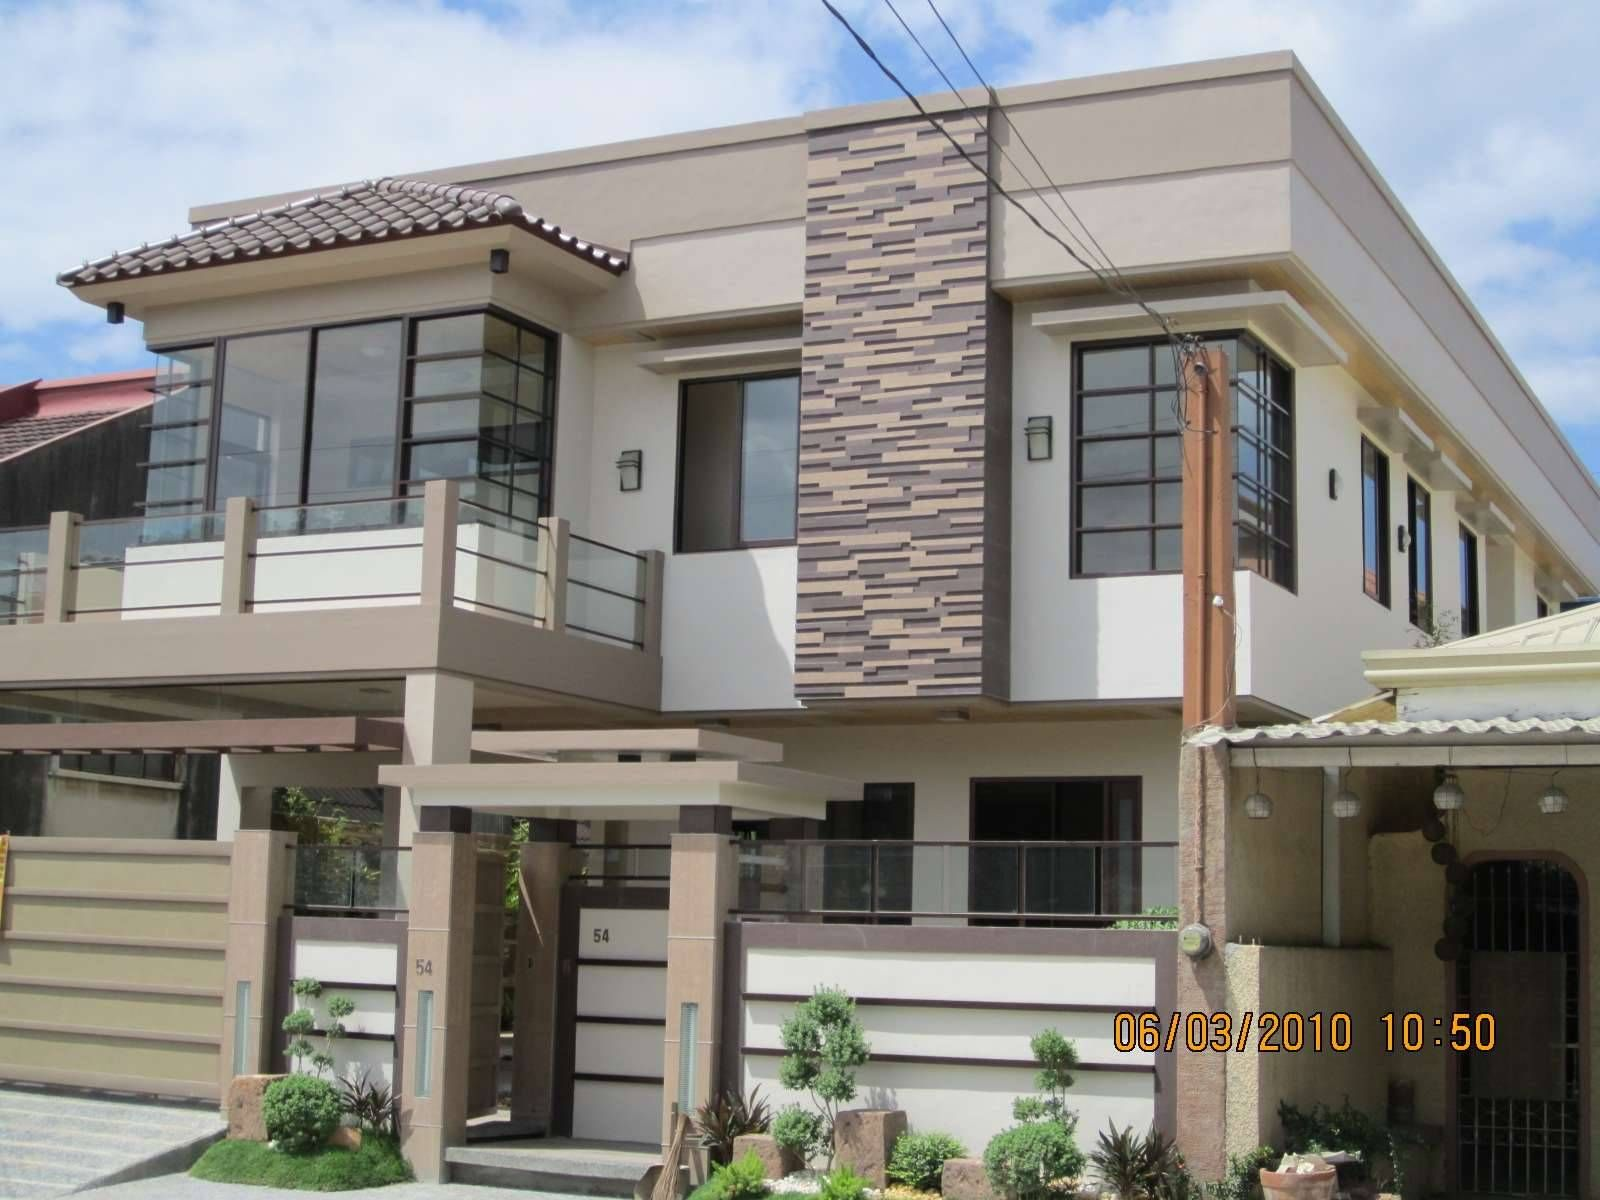 Philippines modern house exterior design dream house House window layout